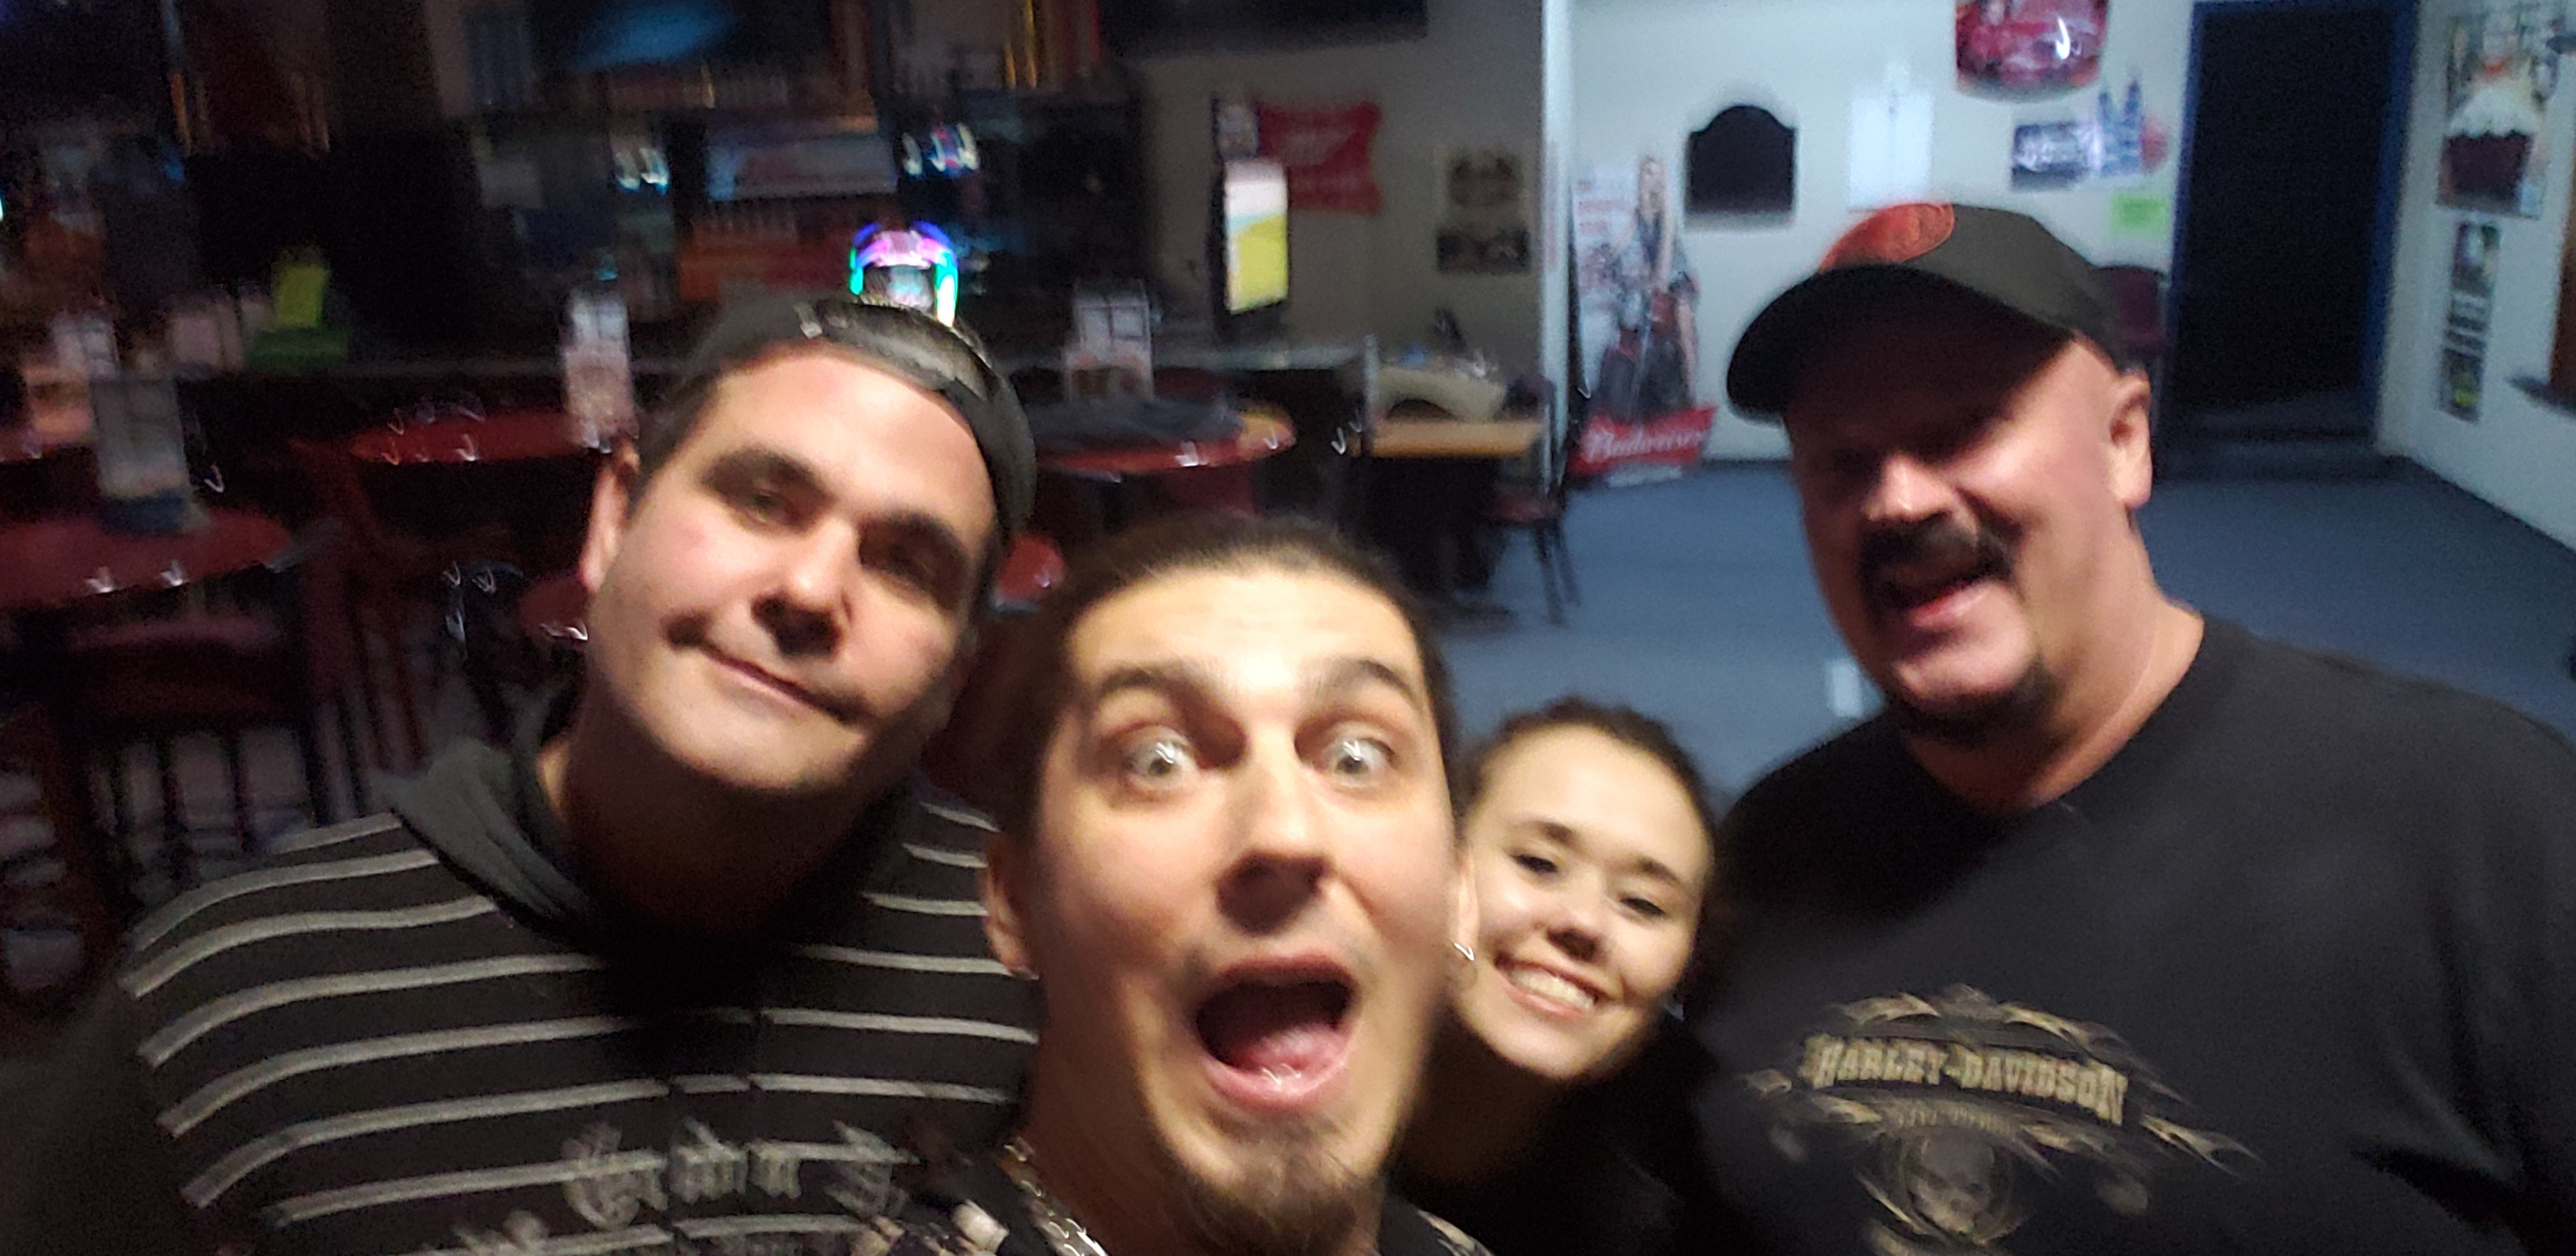 With the gang at the Billiards